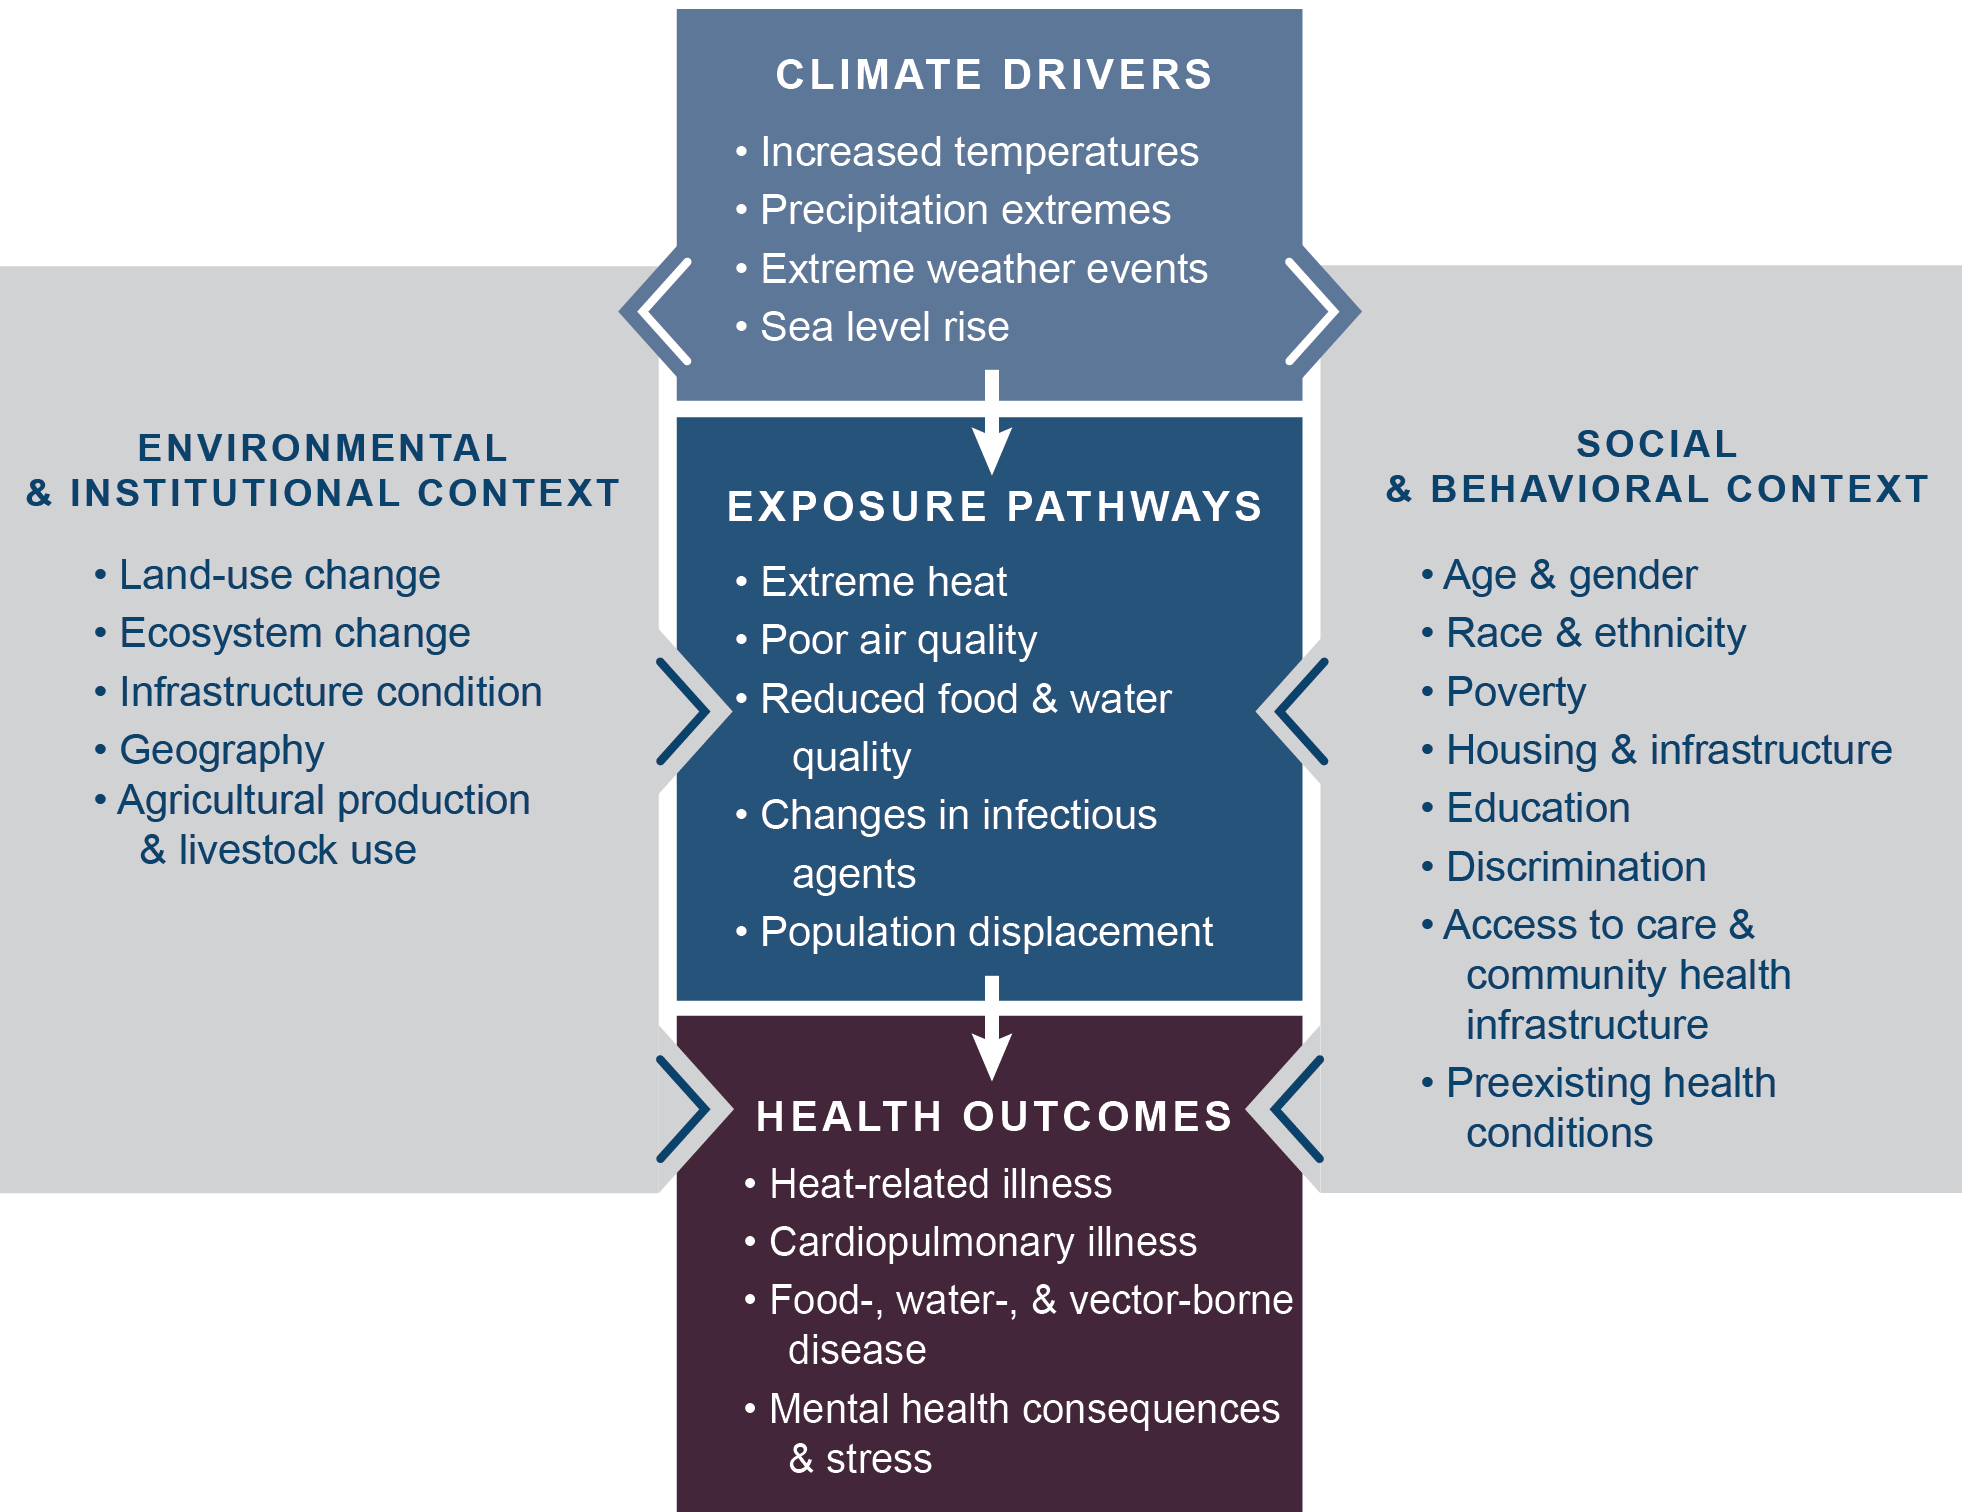 Conceptual diagram illustrating the exposure pathways by which climate change affects human health